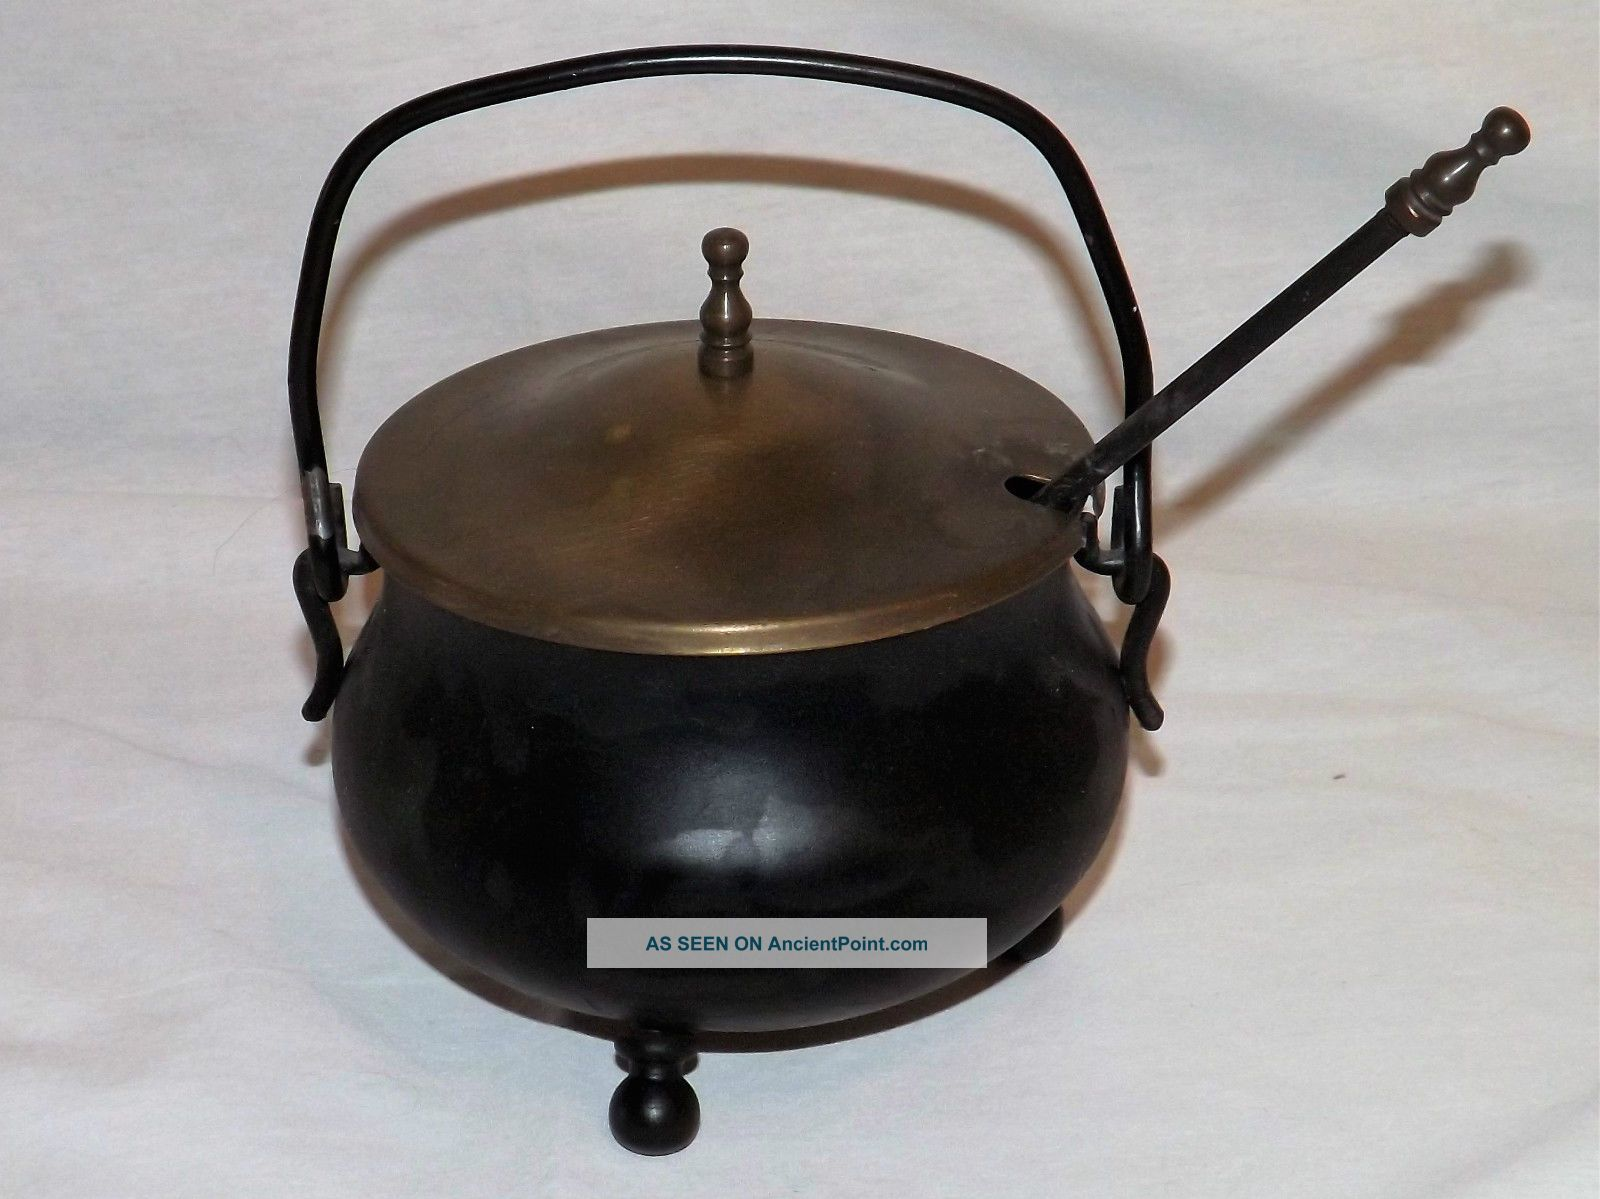 Vintage Smudge Pot Cauldron Kettle W Brass Lid Fire Starter Pumice Wand Antique Hearth Ware photo